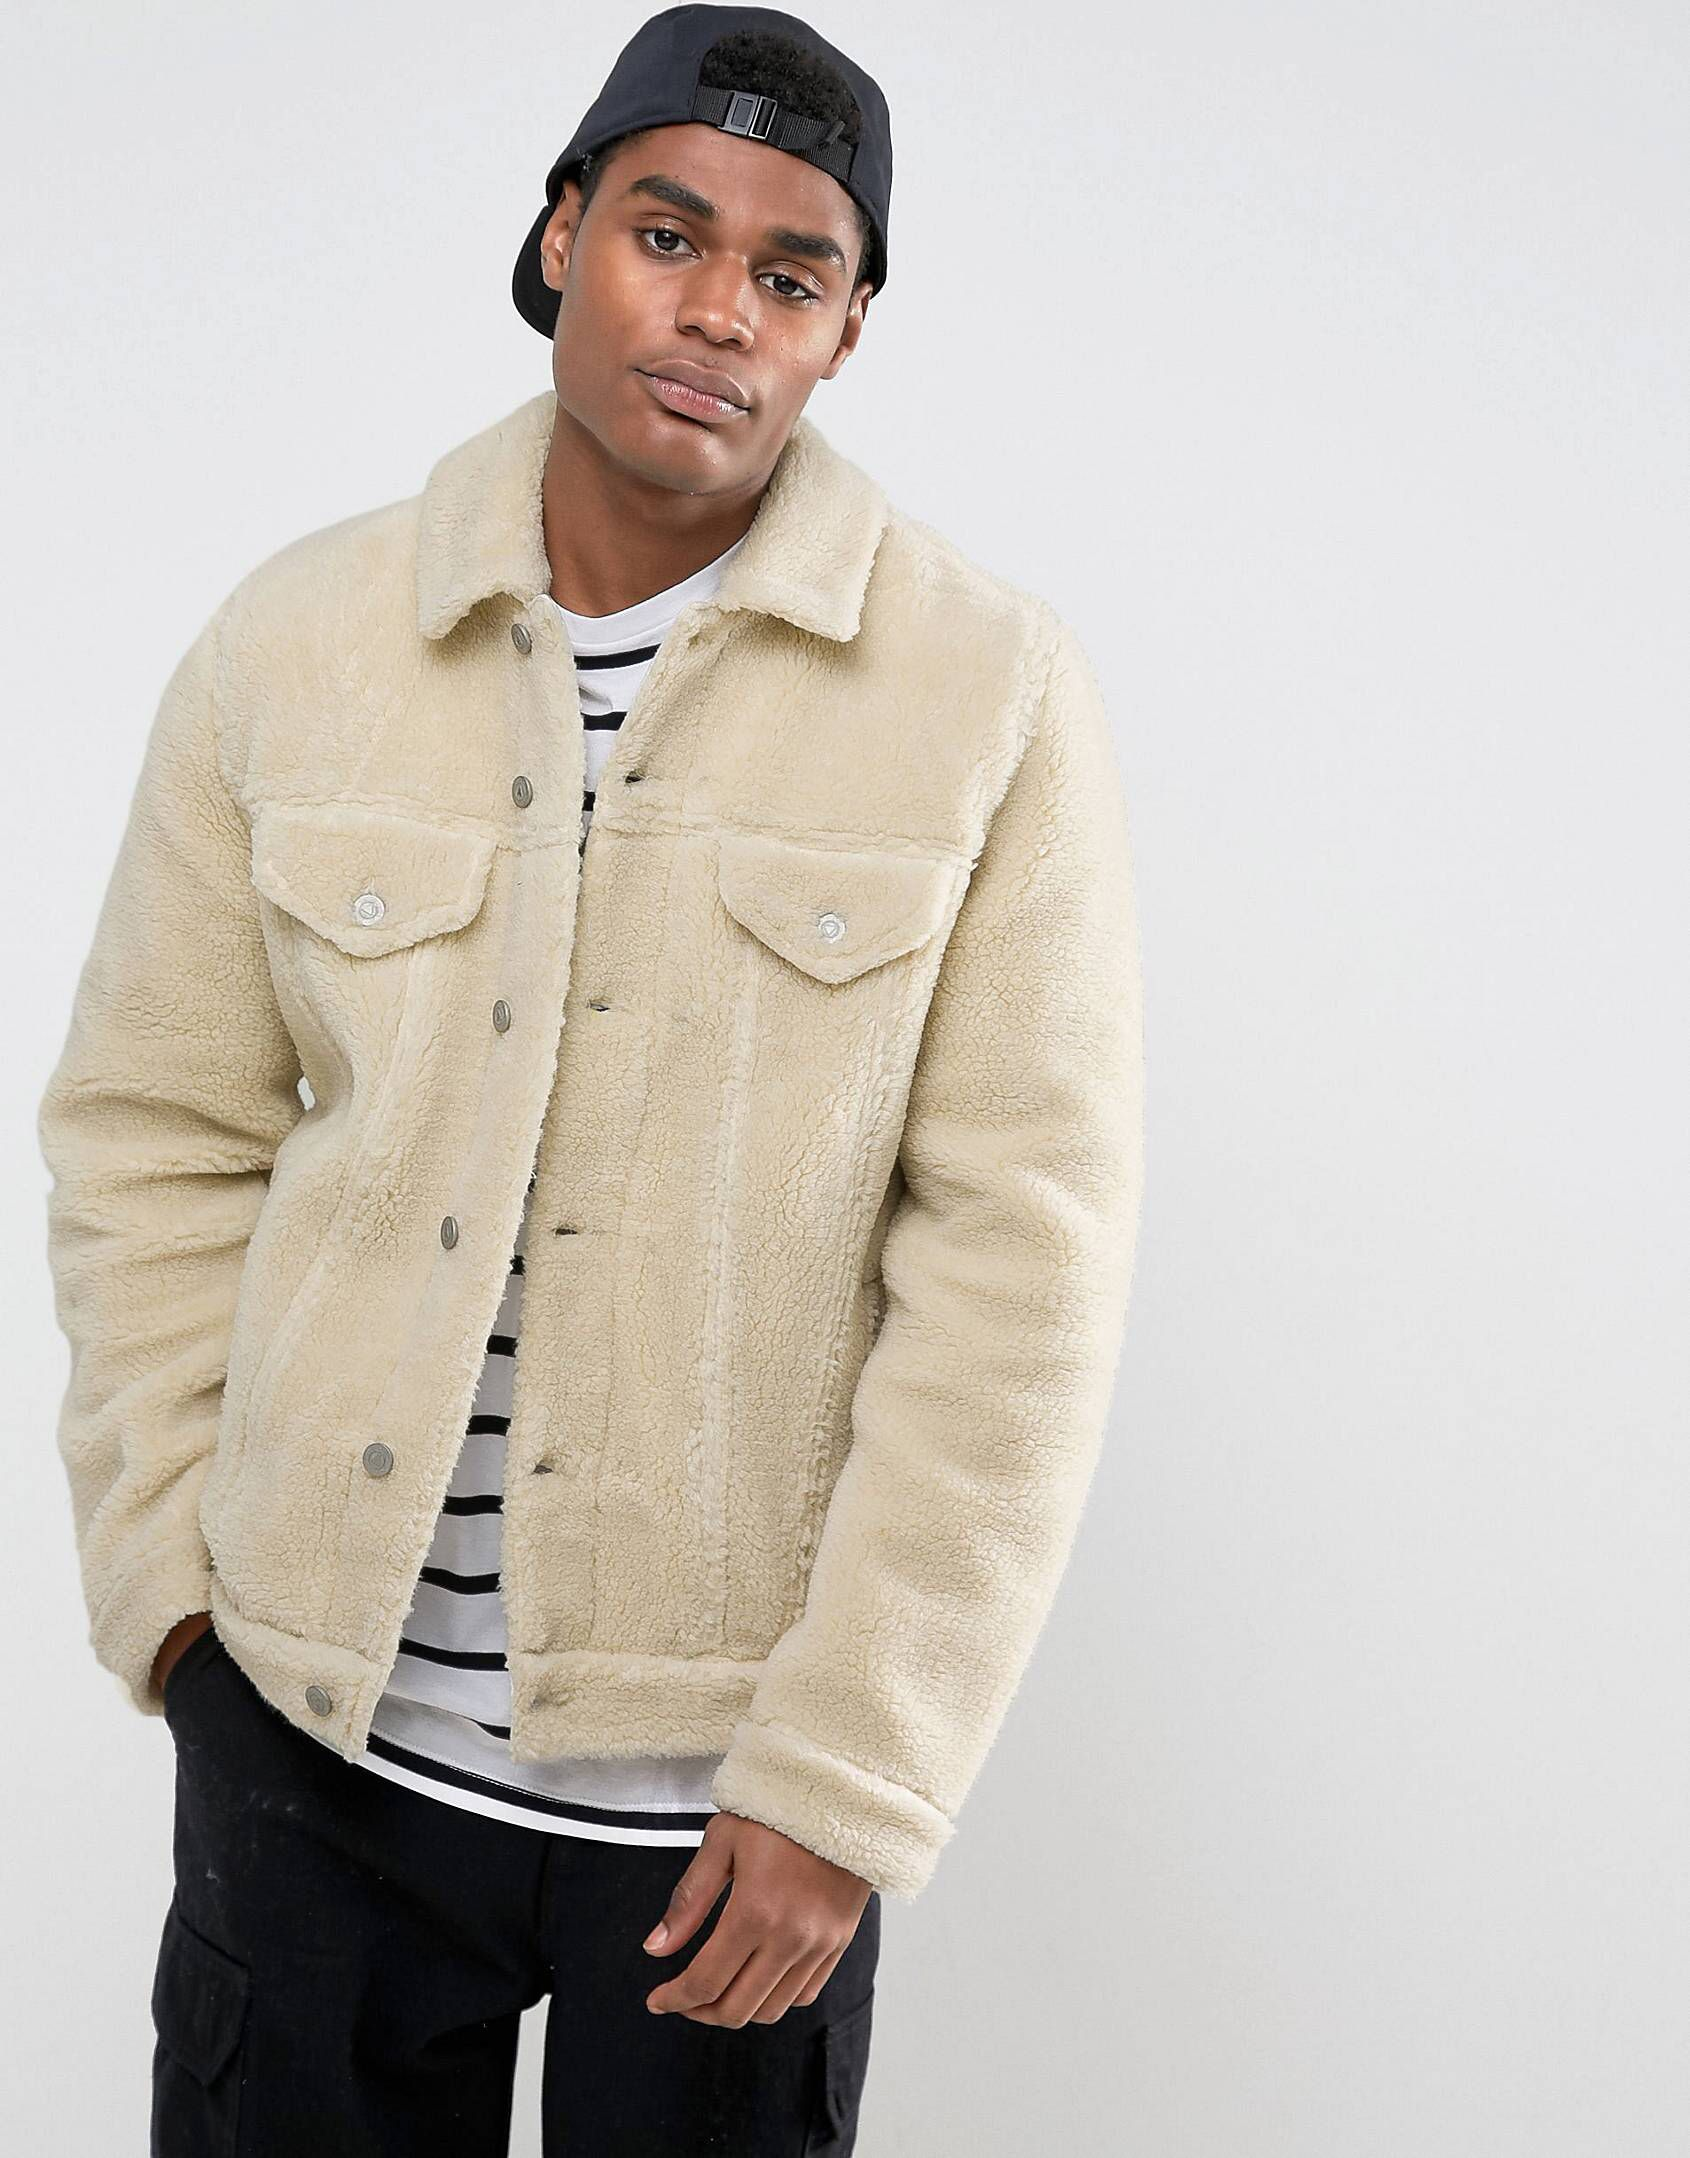 98d36663af ASOS Borg Western Jacket in Ecru | The Clothes He Covets | Latest ...